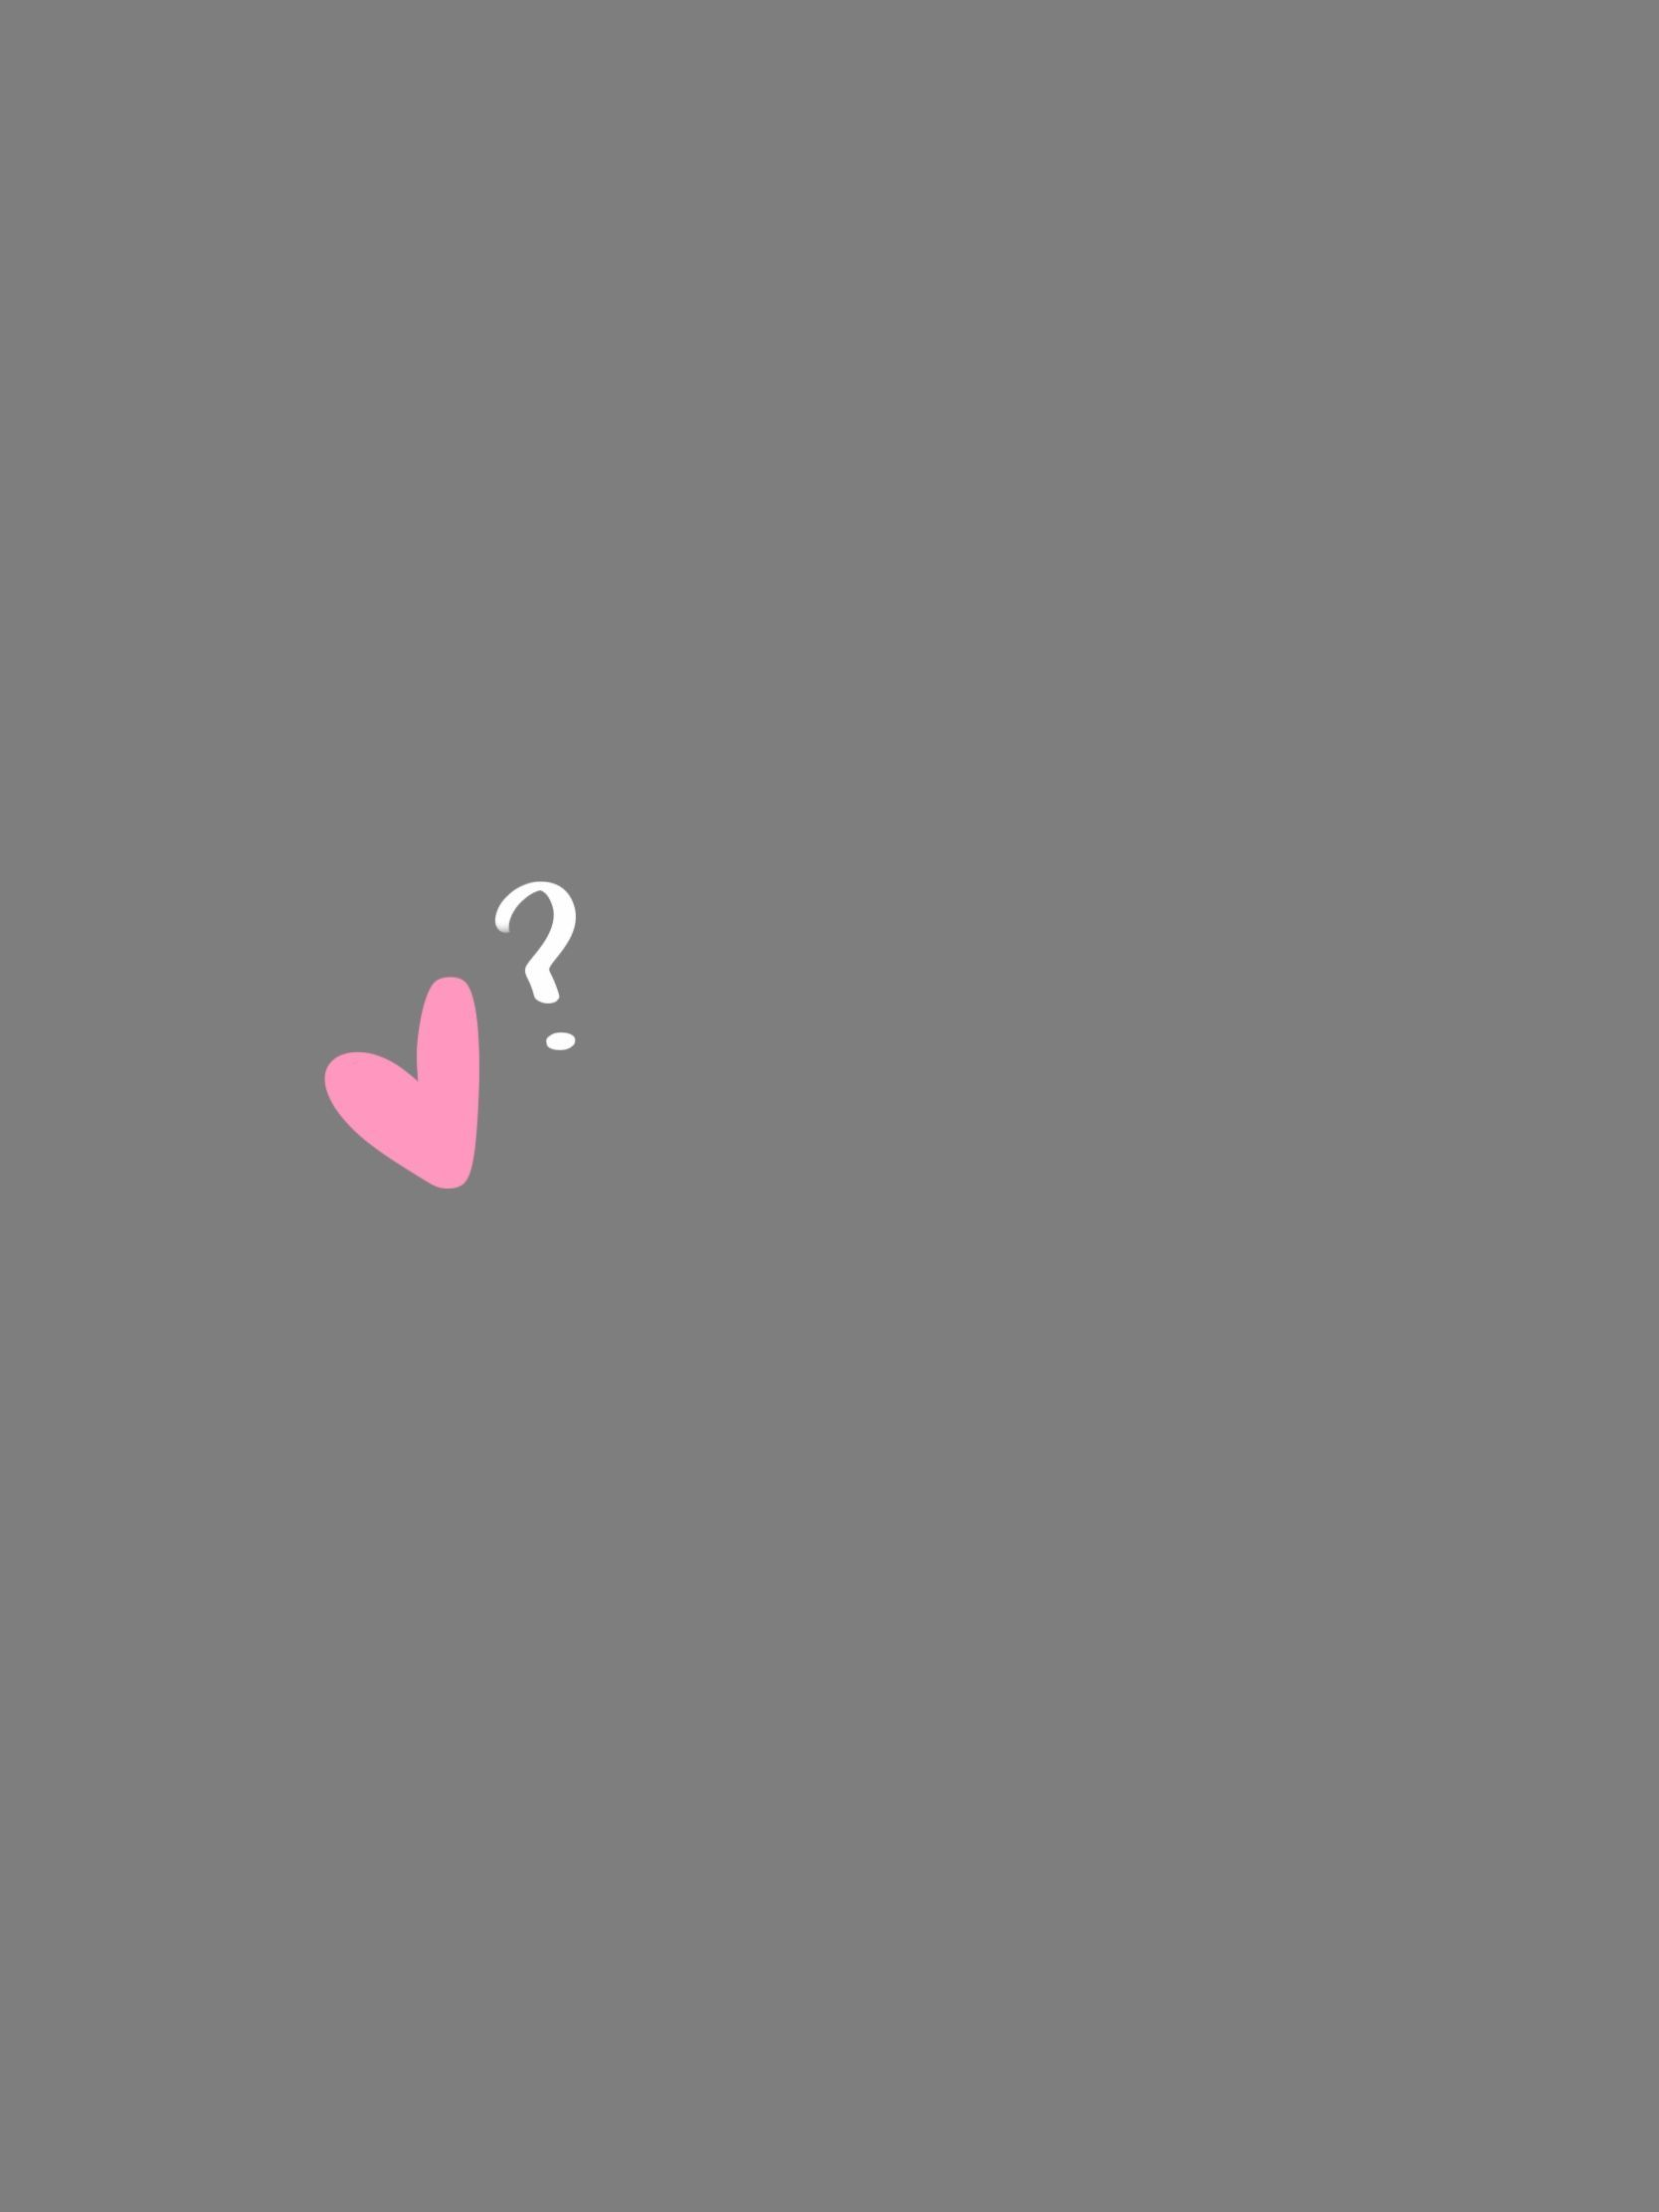 Love Is Gray Background Pink Heart White Question Mark Iphone Wallpaper Procreate Dr Wallpaper Iphone Love Grey Wallpaper Iphone Pink And Grey Wallpaper